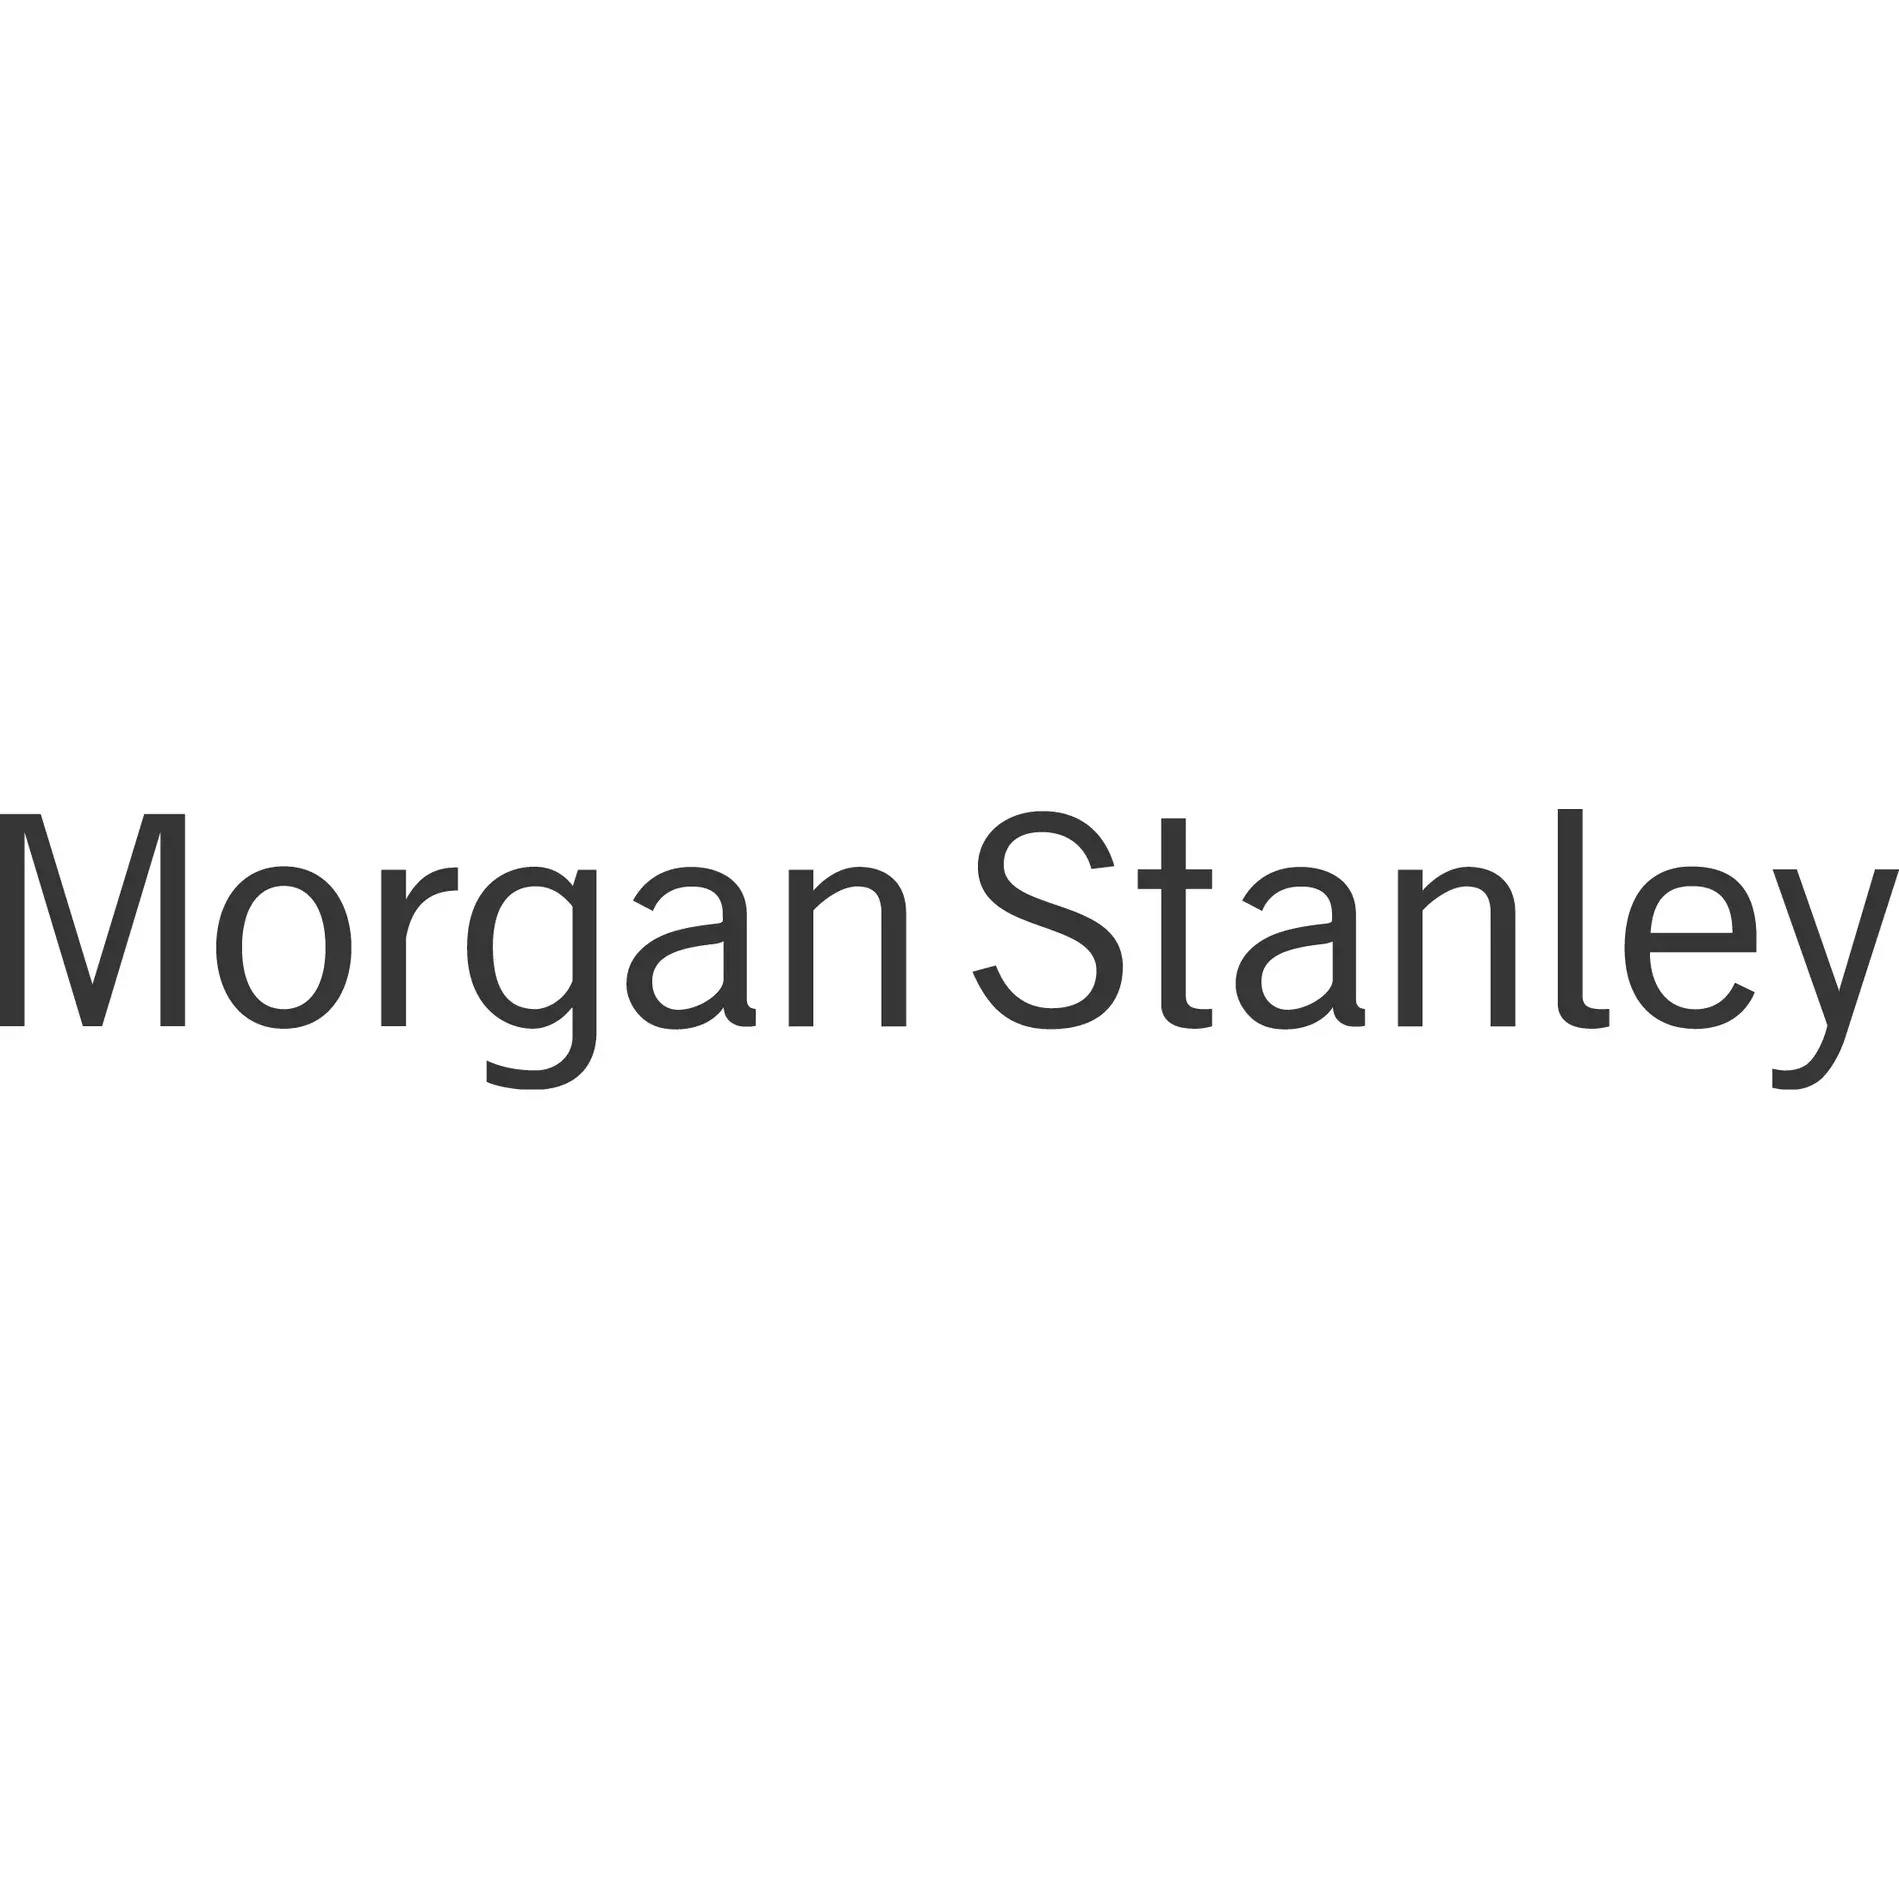 Michael G Stewart - Morgan Stanley | Financial Advisor in Pasadena,California